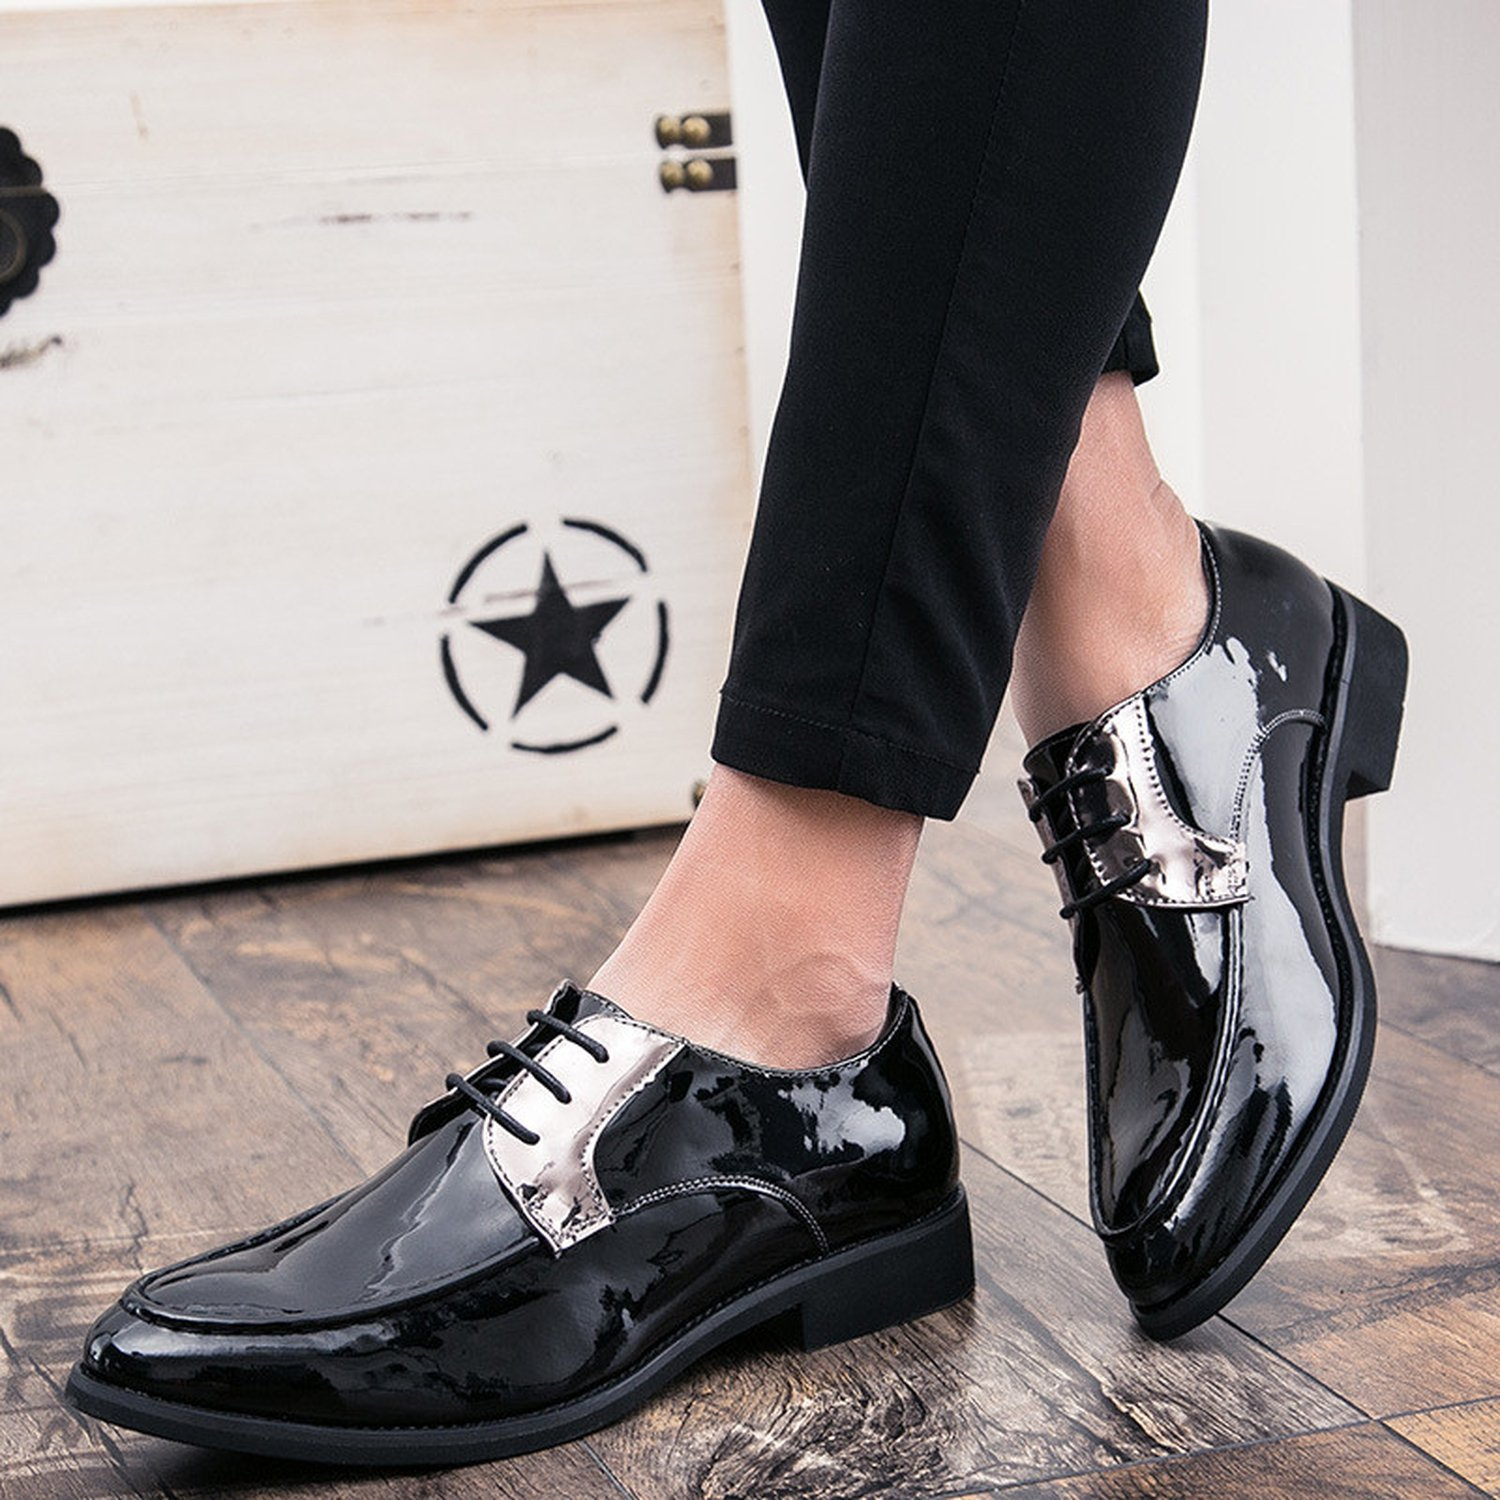 Memoriesed Men Dress Shoes Chic Formal Business Brand Oxfords Shoes Mens Flats,Black-Gold Oxfords,9.5